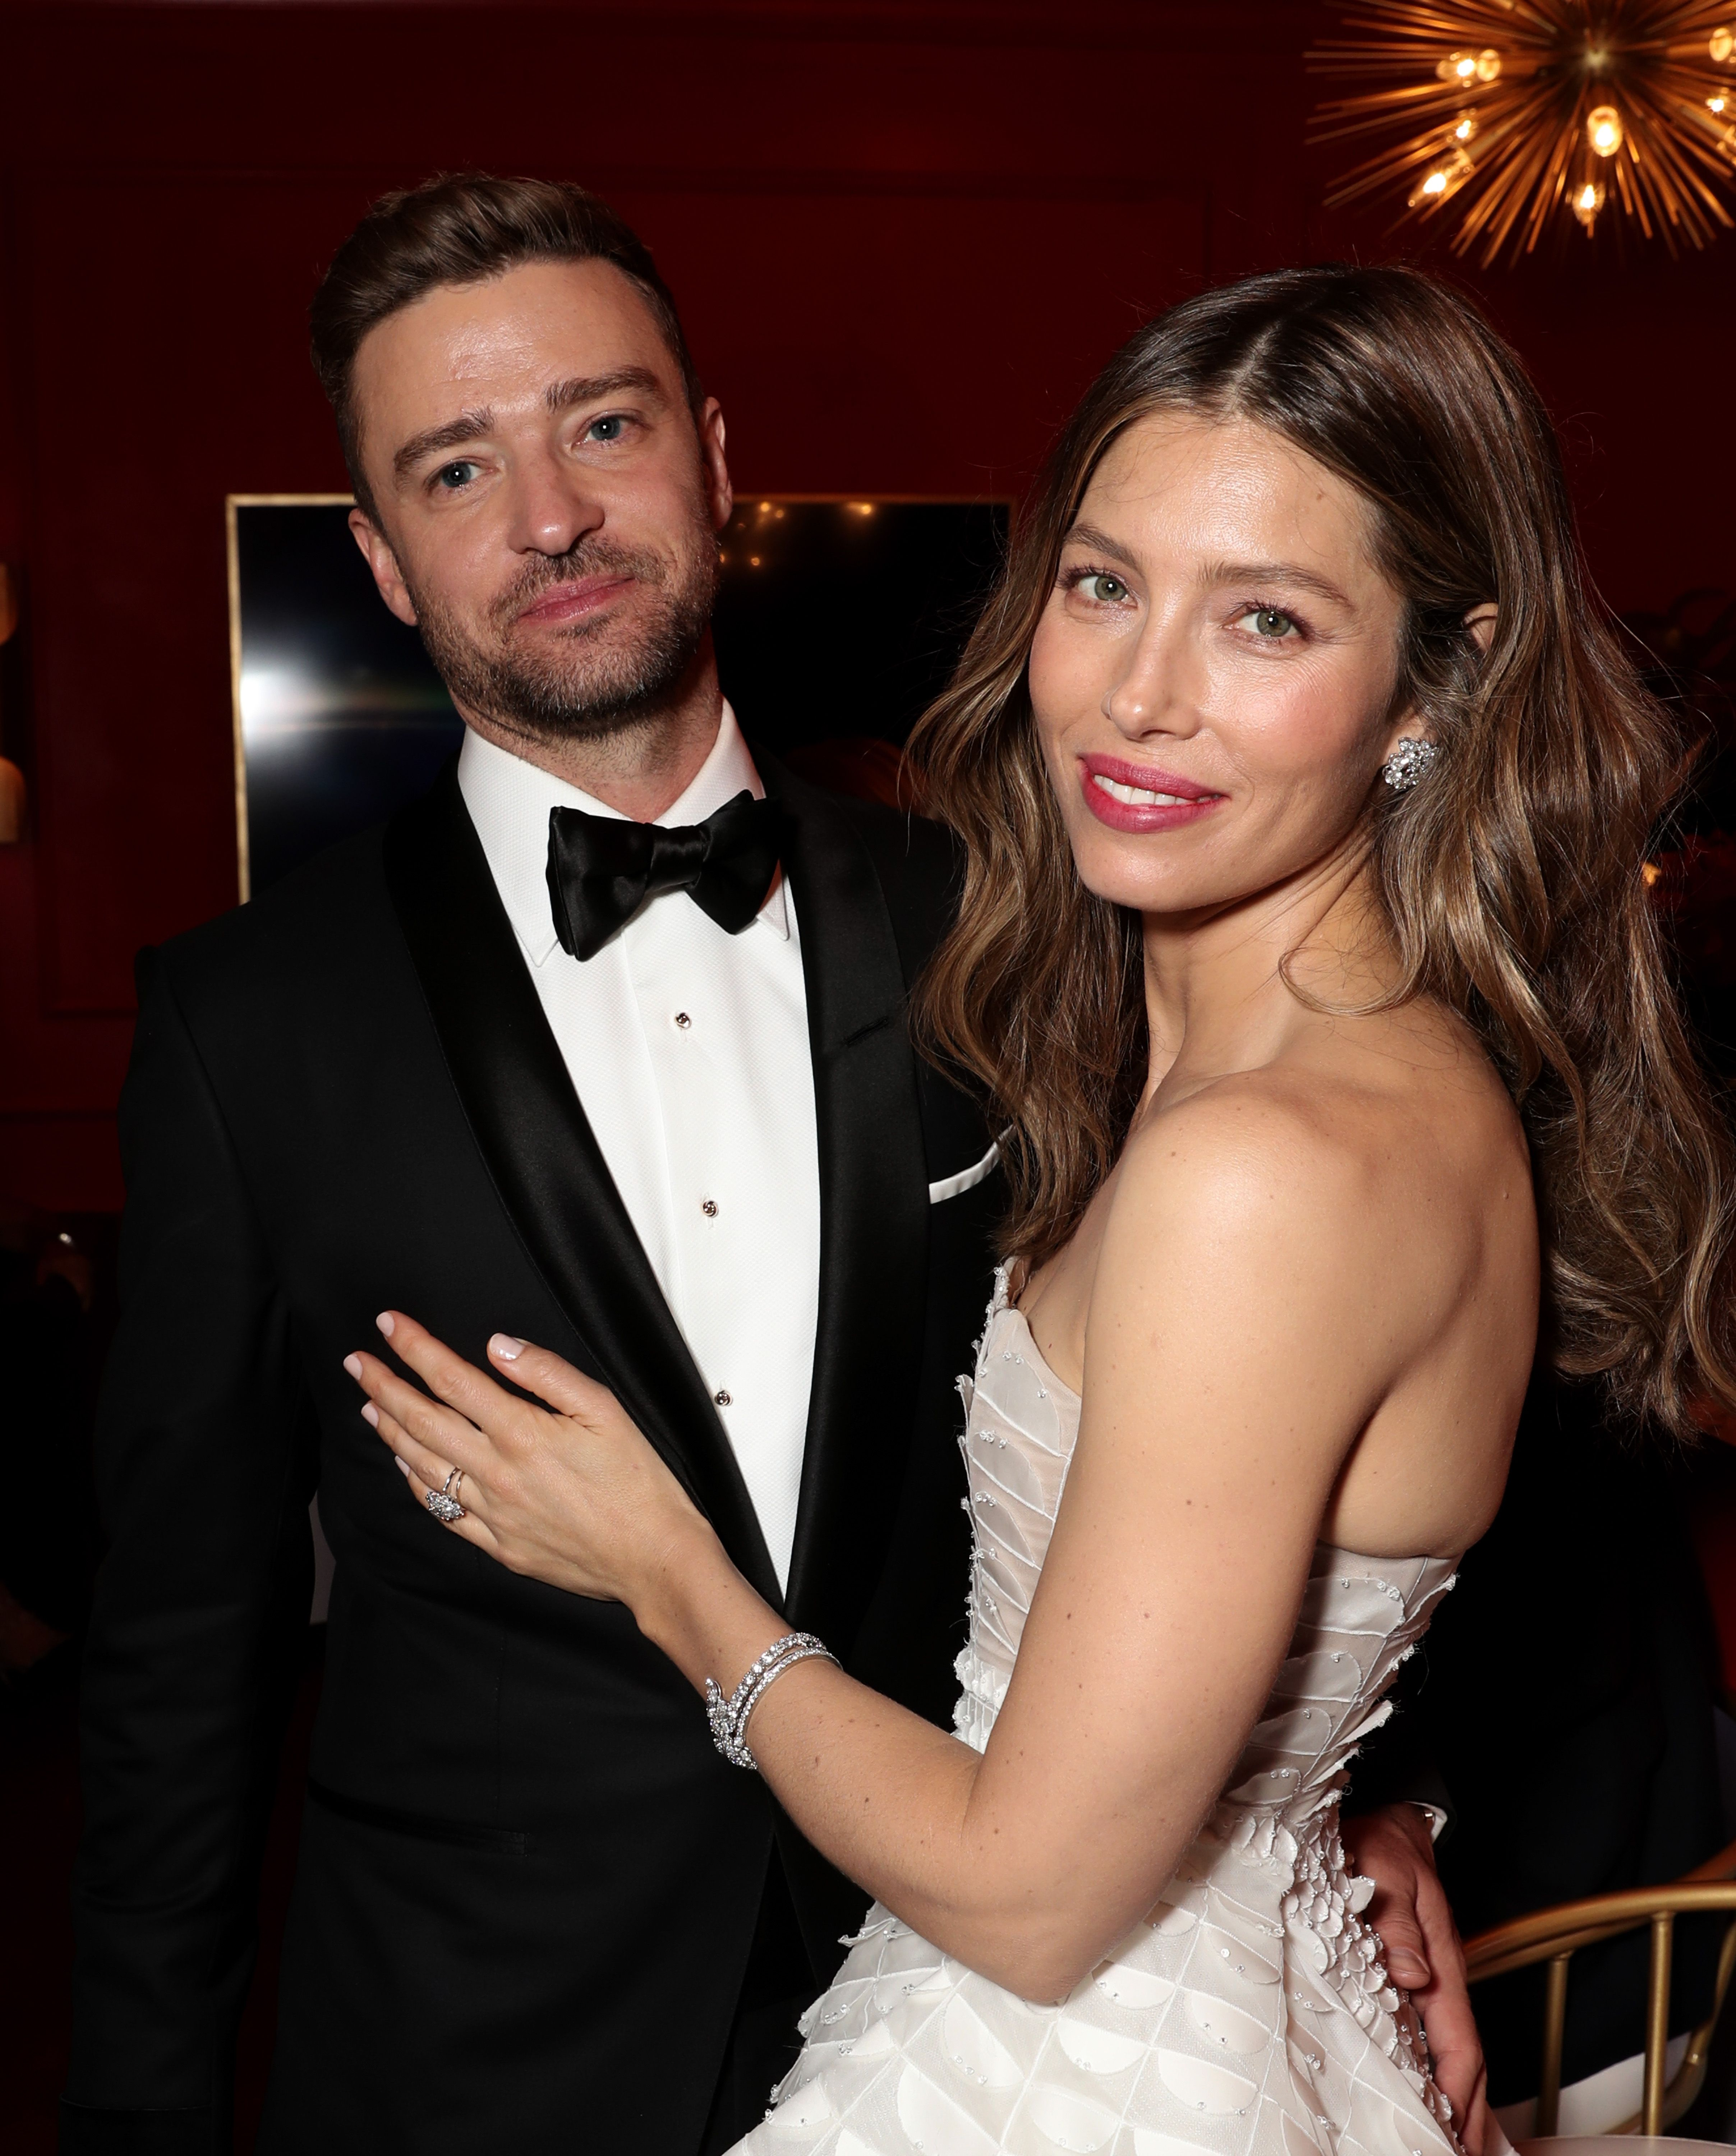 Justin Timberlake and Jessica Biel at the 70th Annual Primetime Emmy Awards on September 17, 2018   Photo: Getty Images